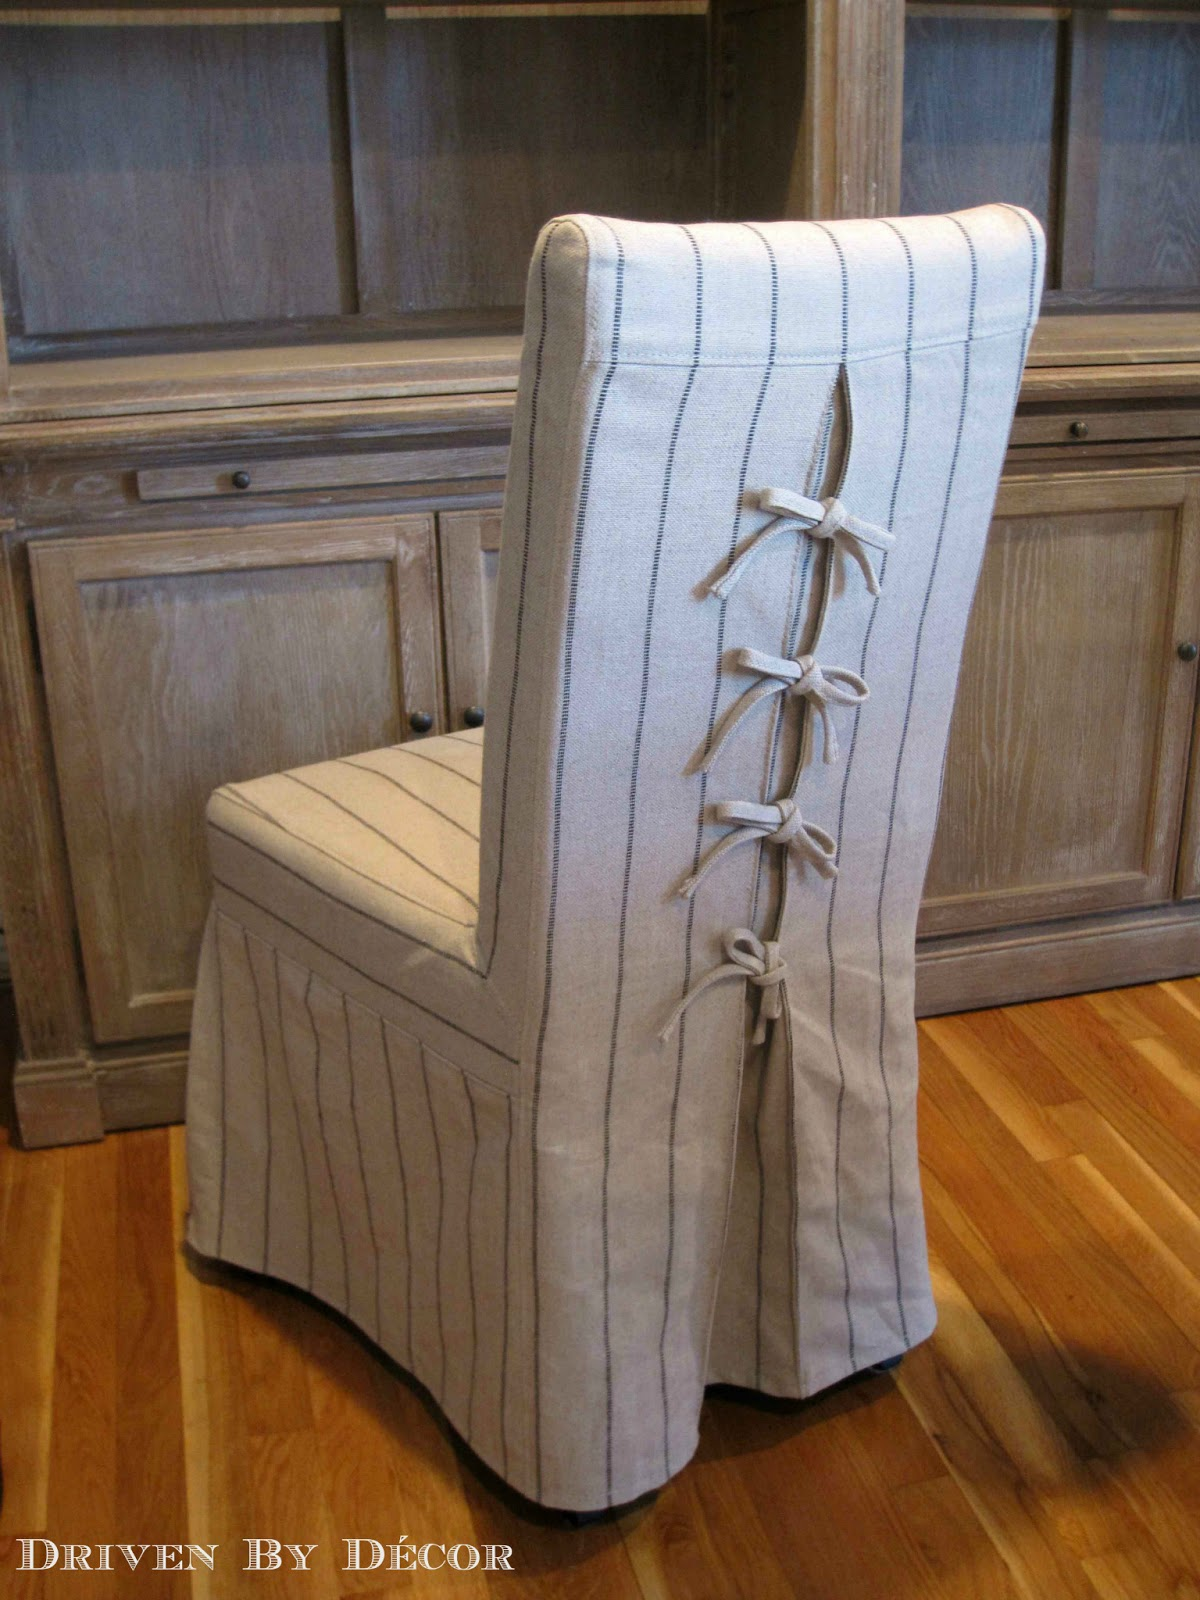 Dining Chair Slipcover Dress Up Your Dining Chairs Corseted Slipcovers Driven